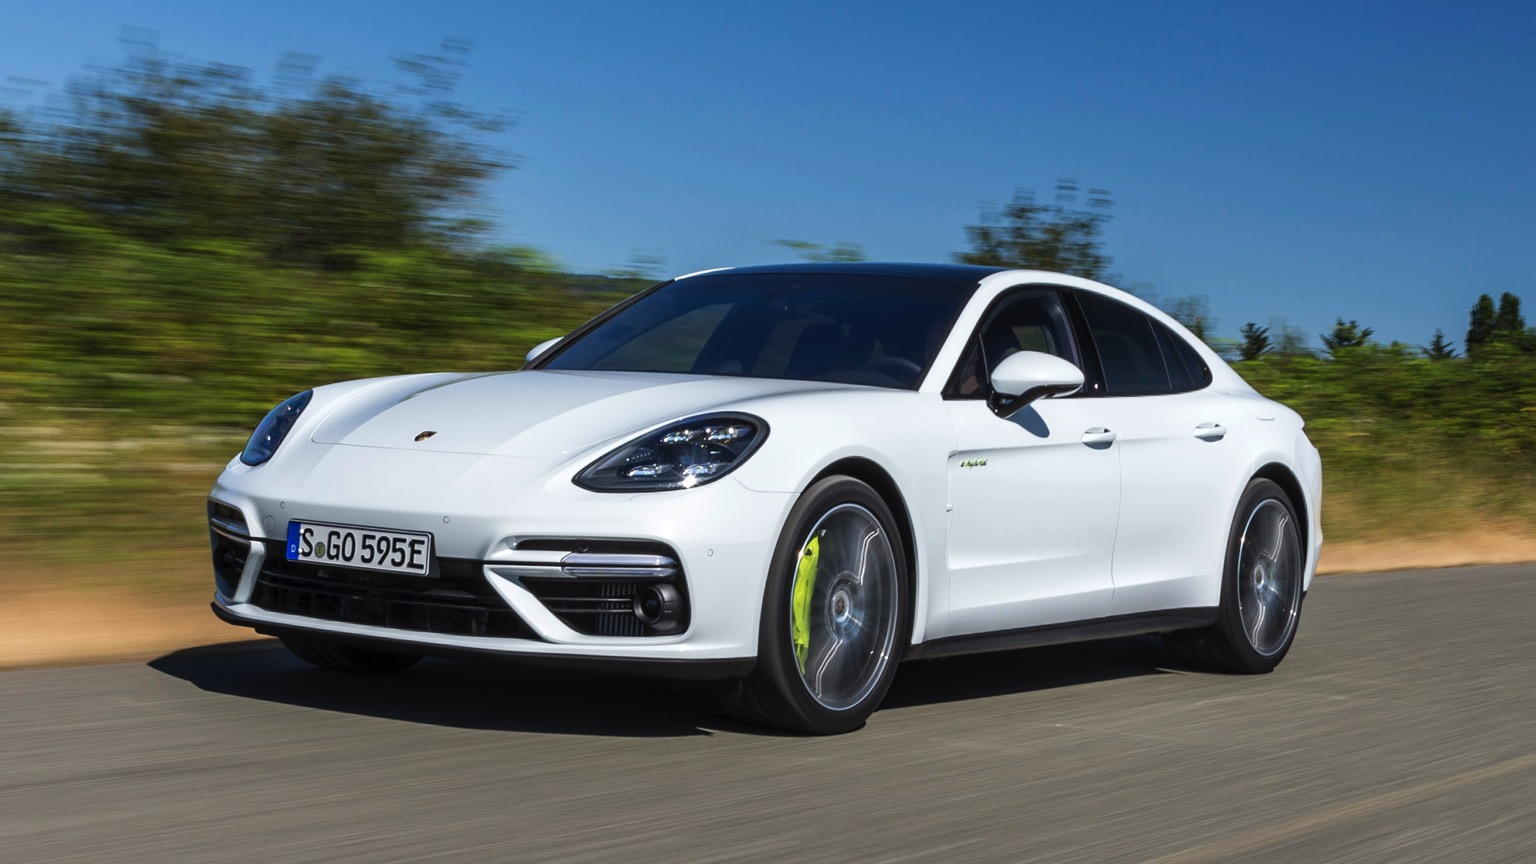 Porsche Panamera Turbo S E Hybrid Price And Specifications Ev Database